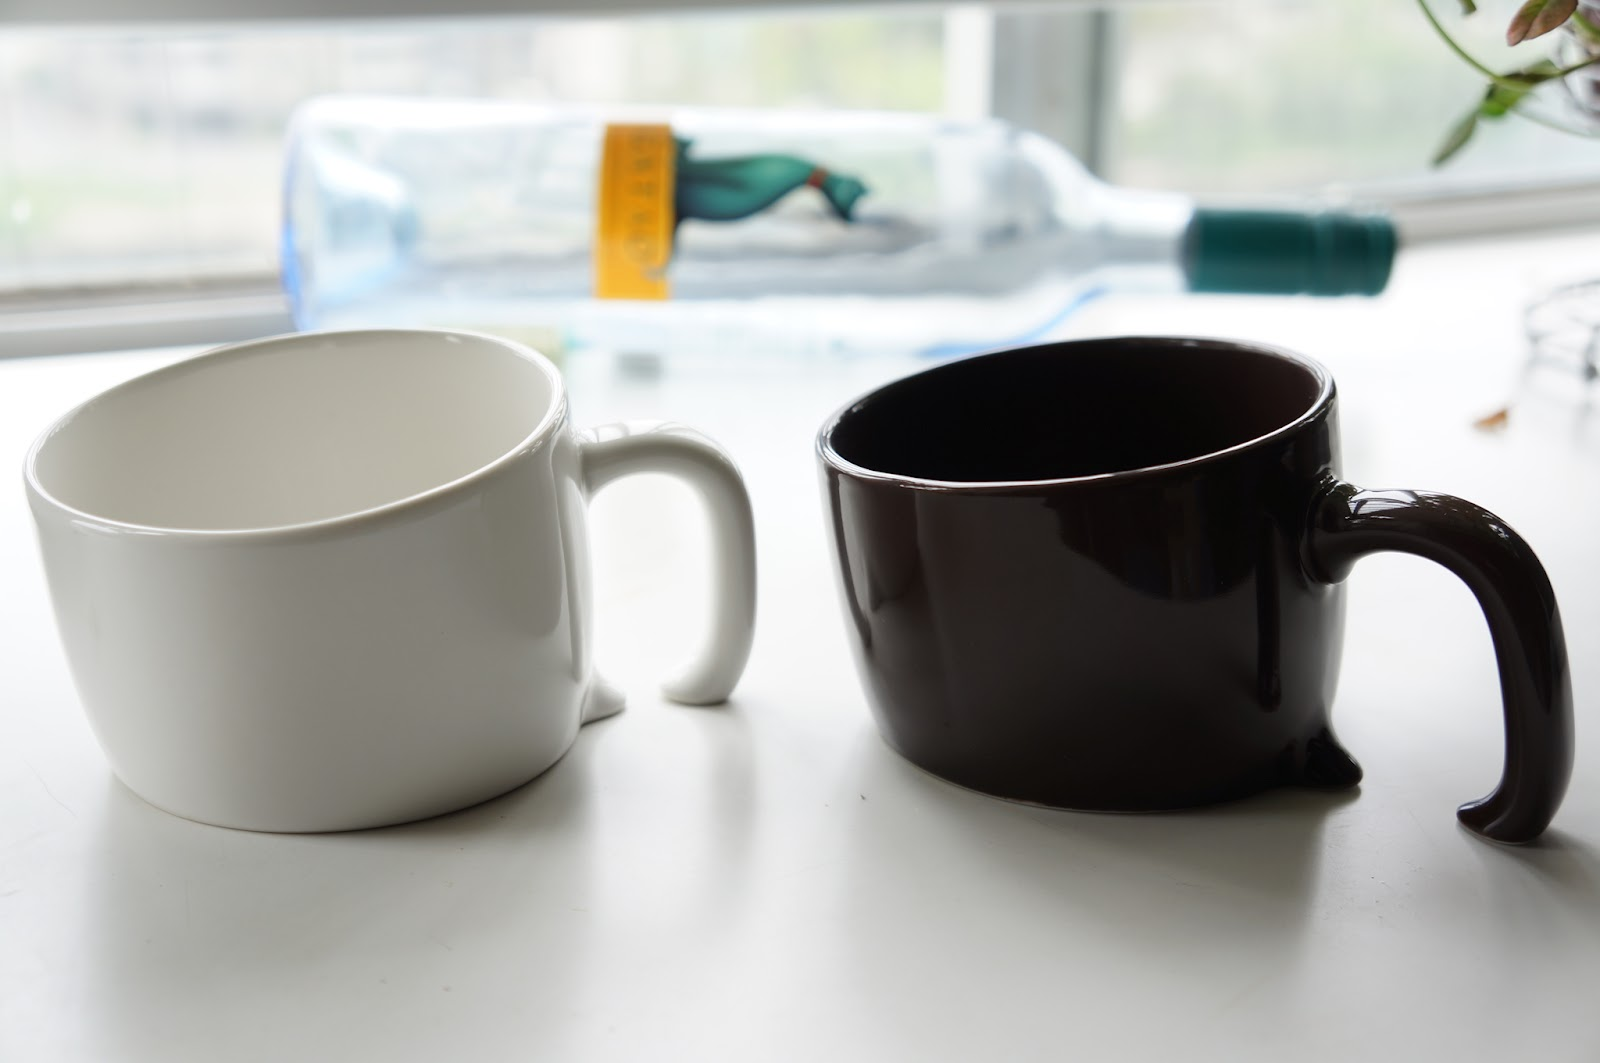 awesome-design-ideas-Sinking-Mug-Japan-Trend-6